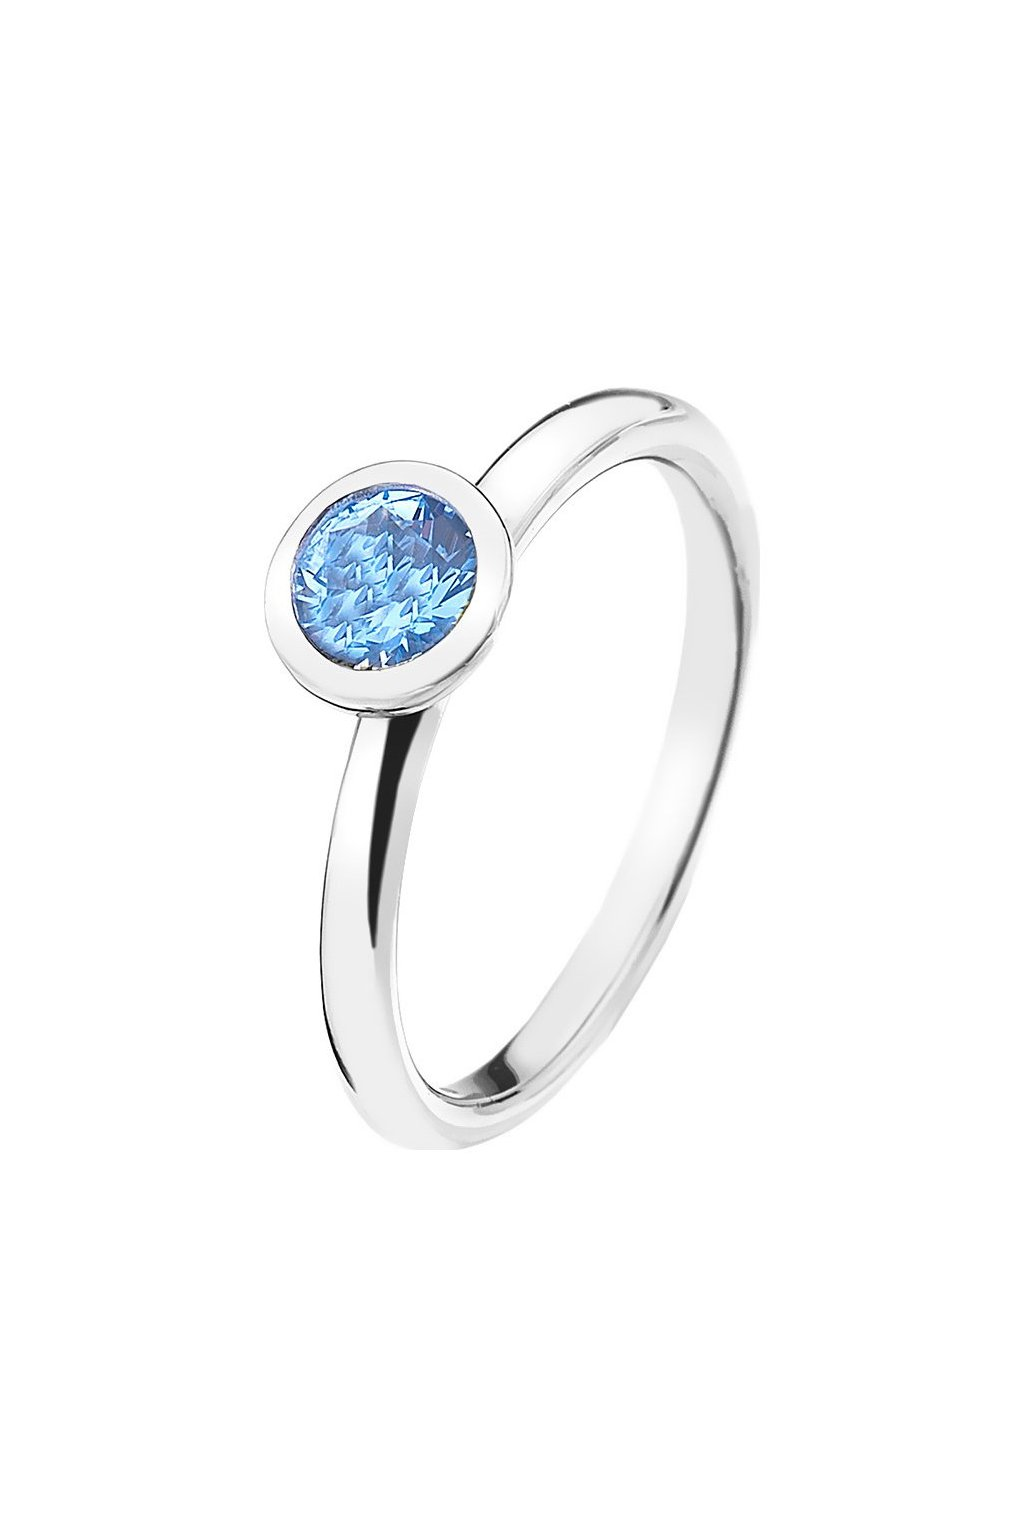 Stříbrný prsten Hot Diamonds Emozioni Scintilla Blue Peace